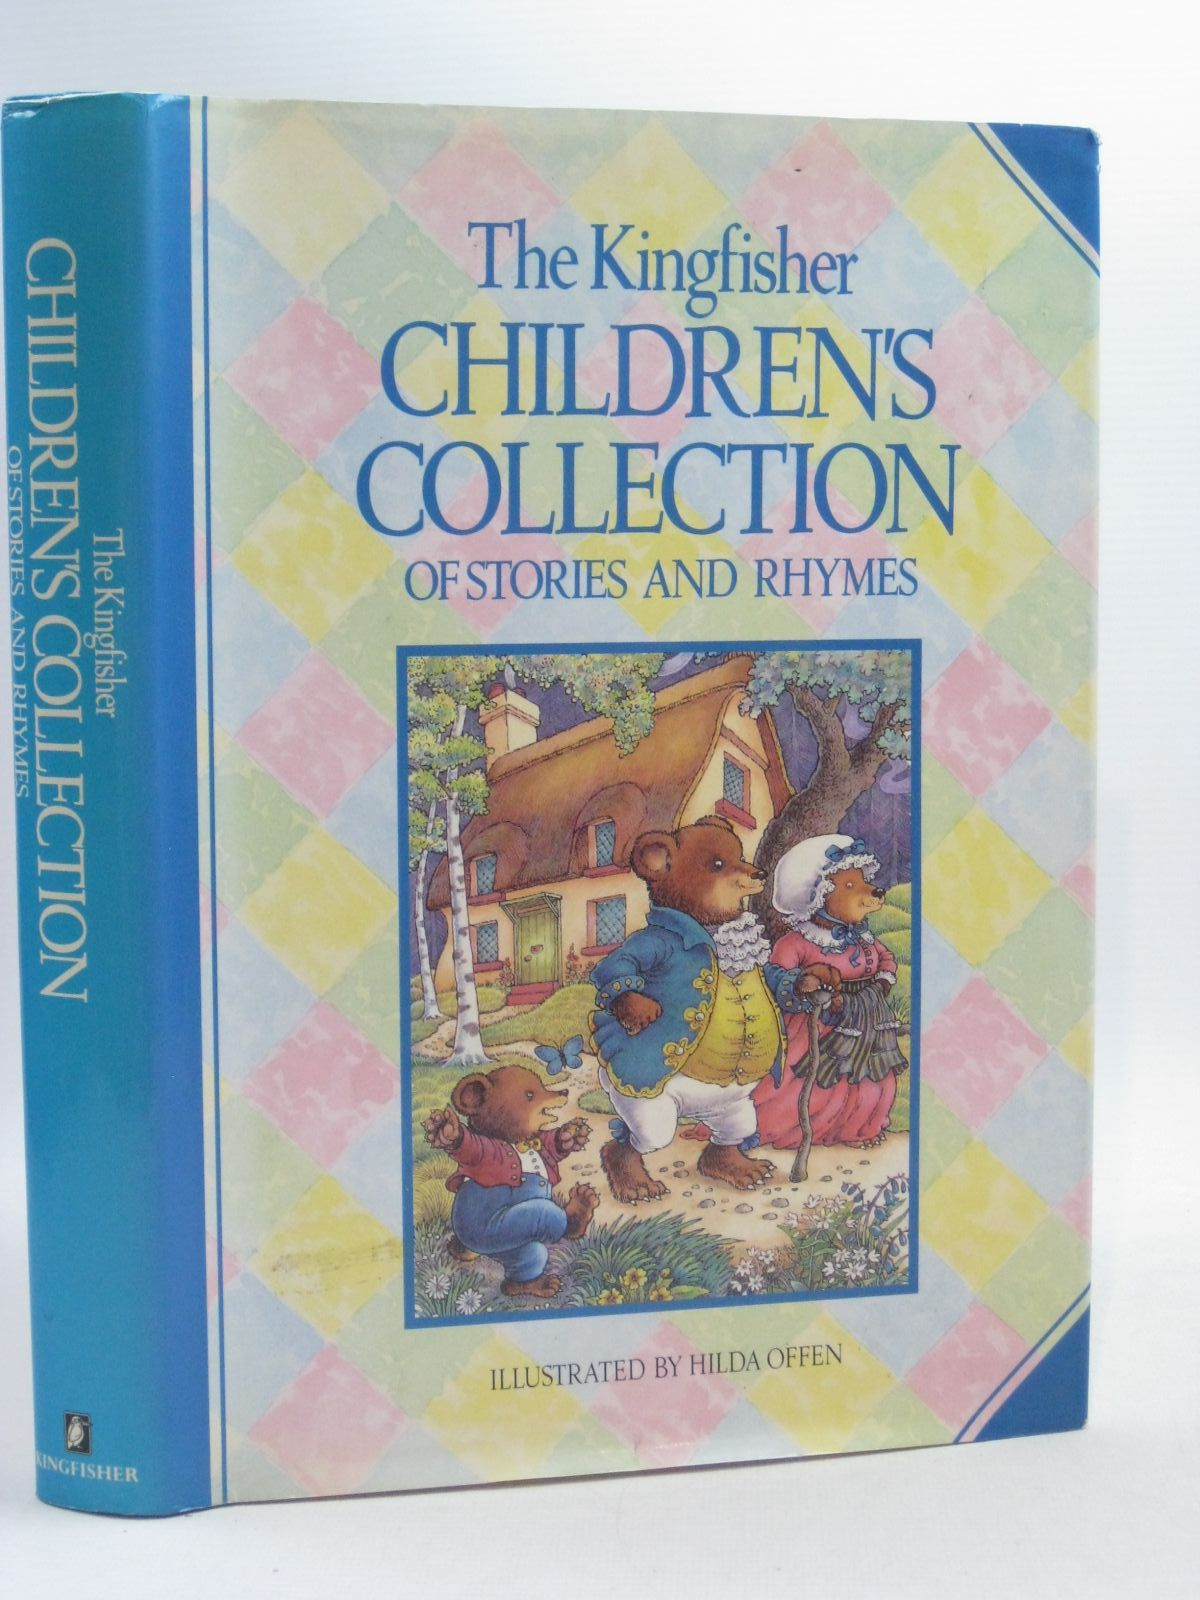 Photo of THE KINGFISHER CHILDREN'S COLLECTION OF STORIES AND RHYMES written by Yeatman, Linda illustrated by Offen, Hilda published by Kingfisher Books (STOCK CODE: 1404479)  for sale by Stella & Rose's Books